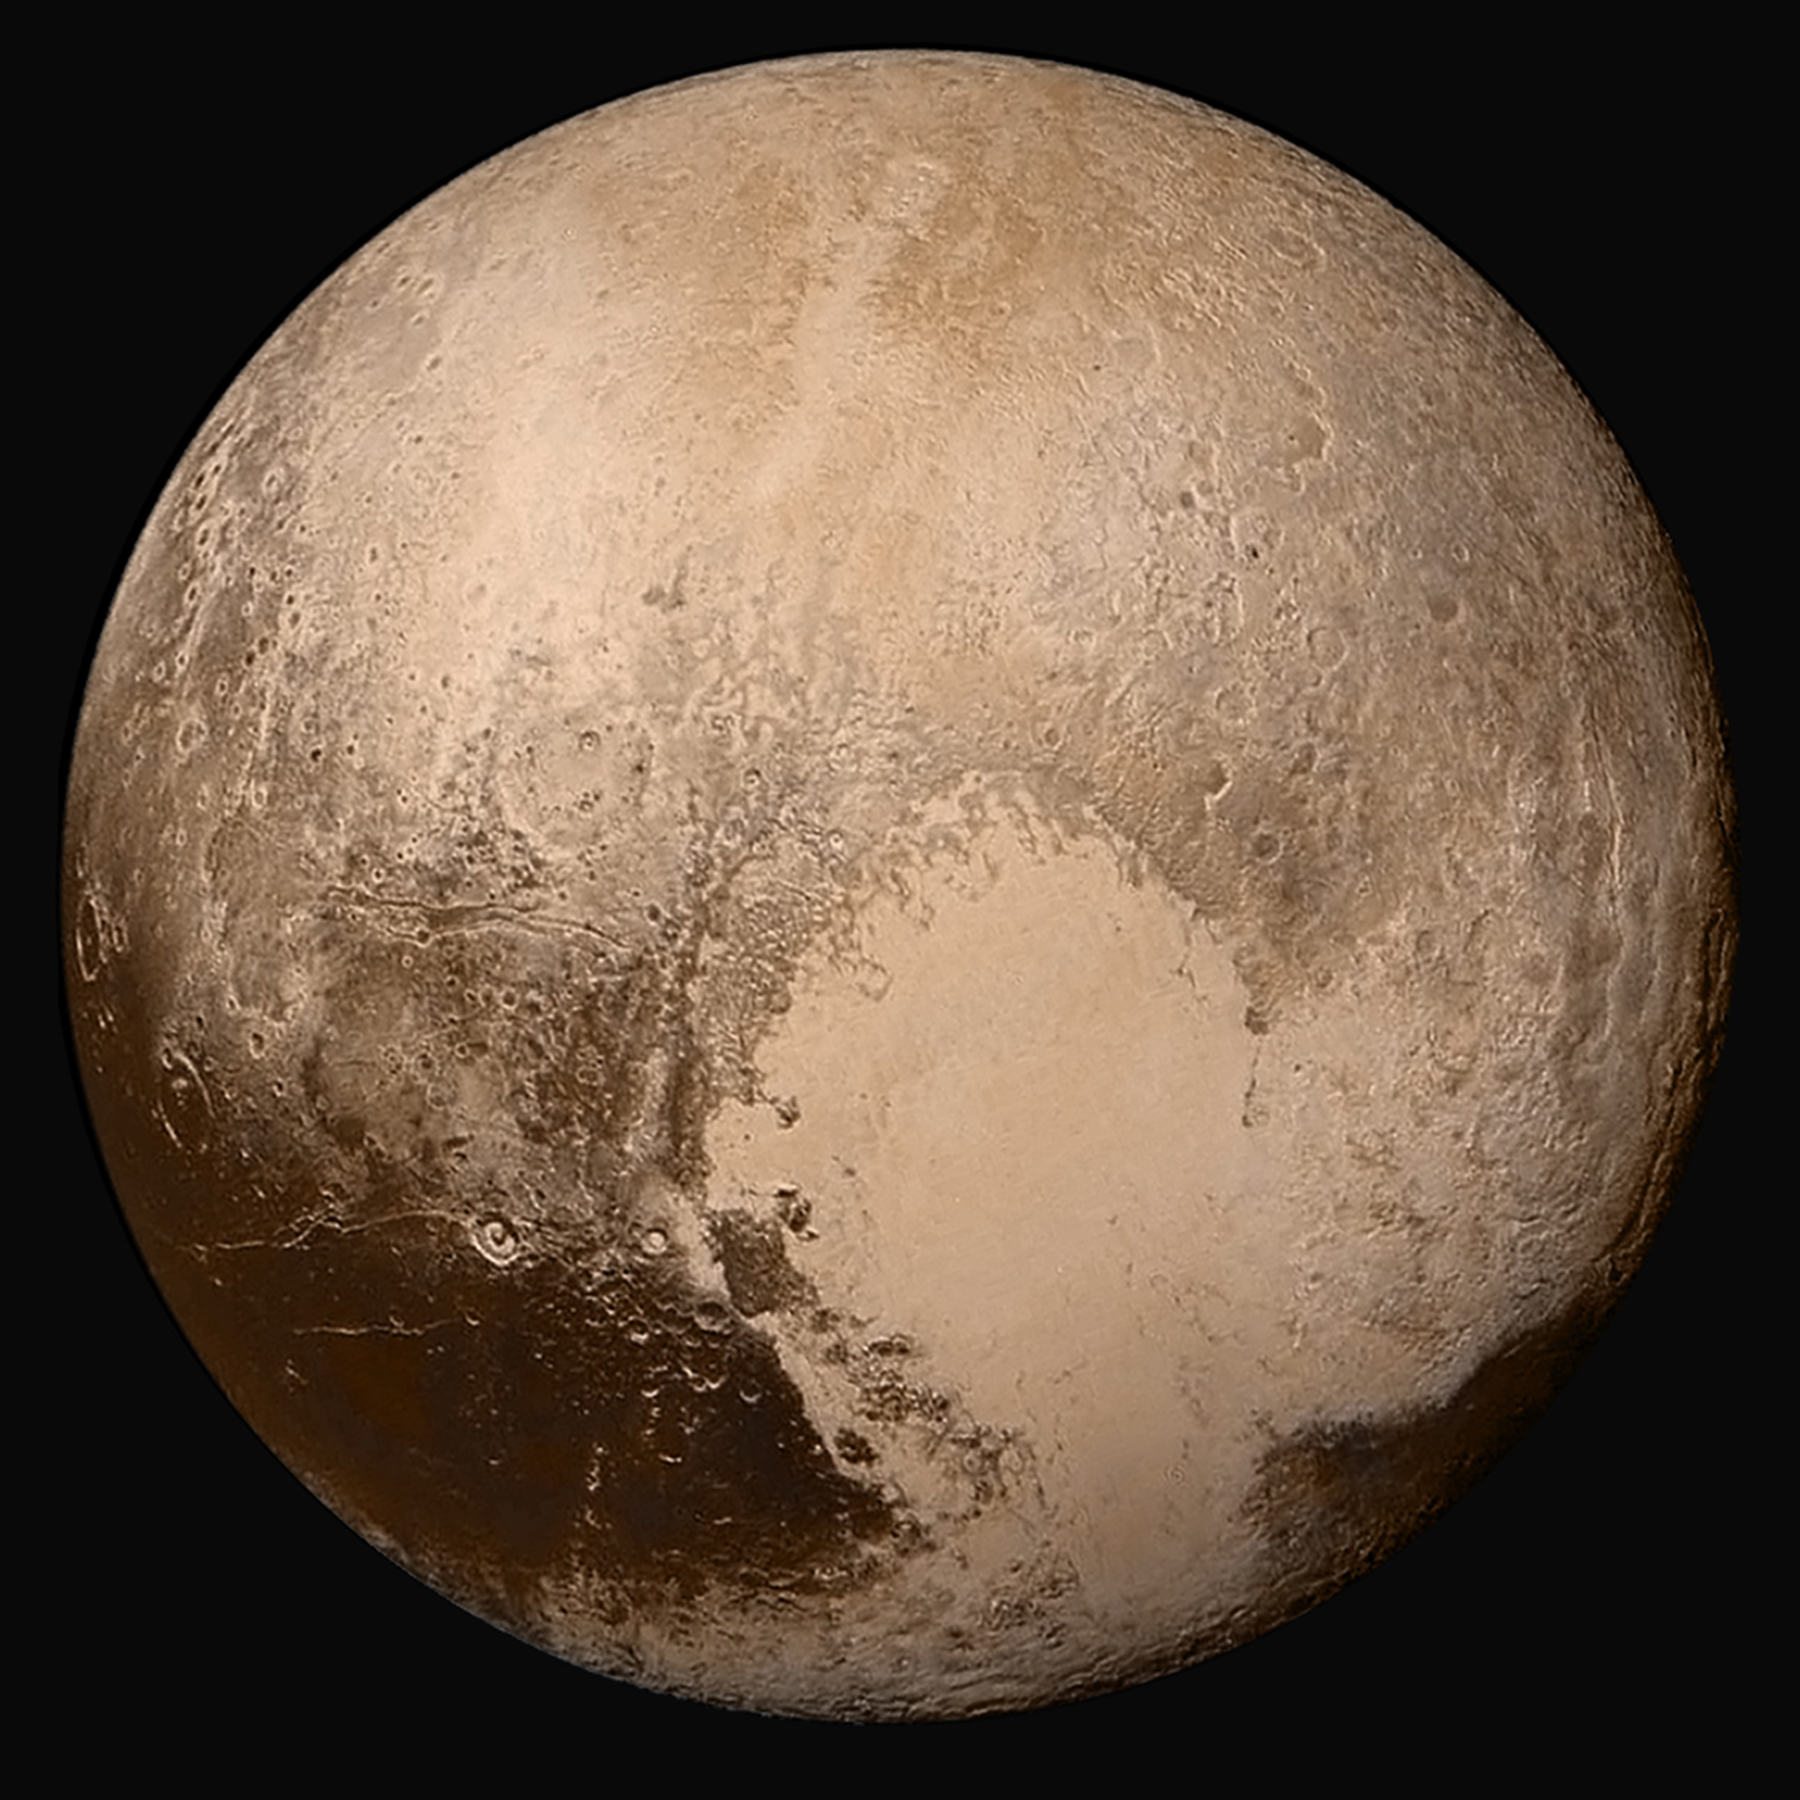 Picture 2: Pluto and its famous heart-shaped surface feature.